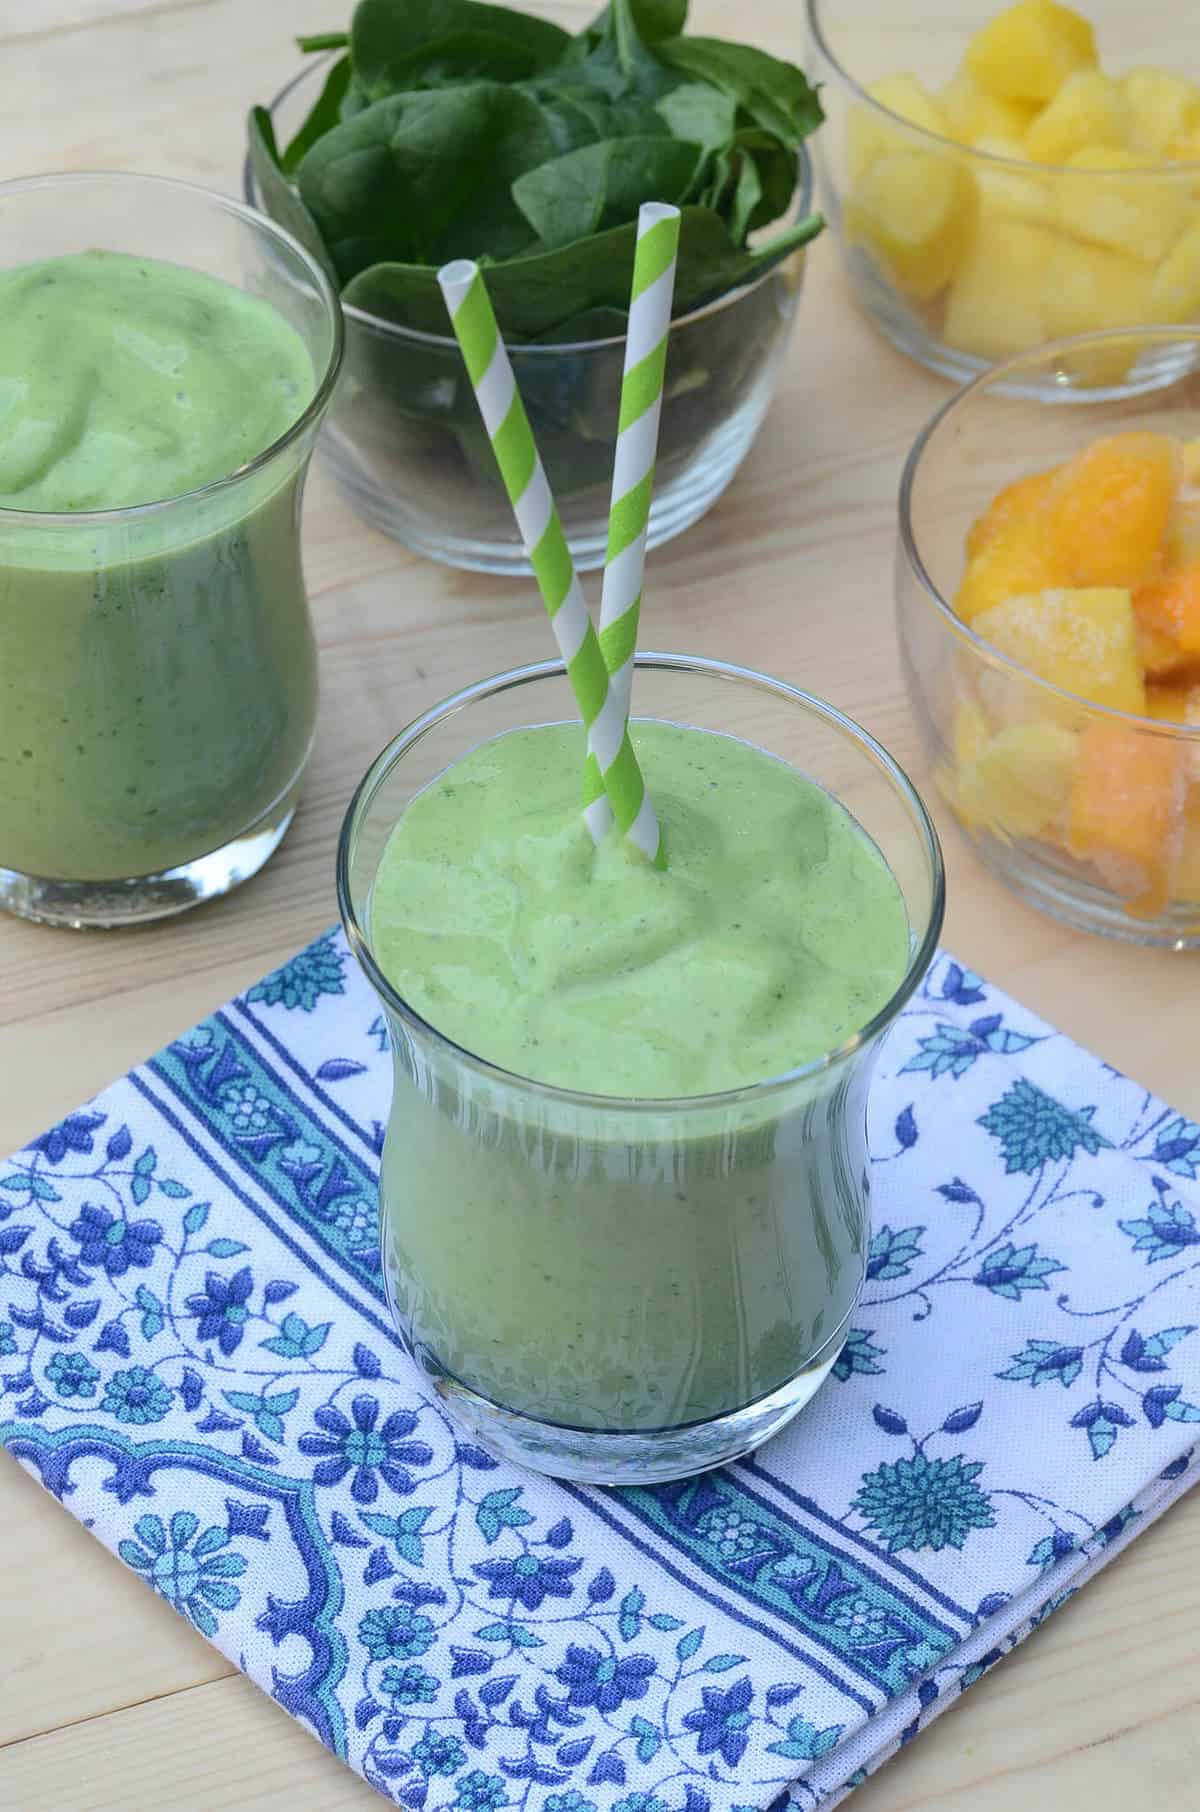 Packed with nutrition and incredible flavor, this creamy Tropical Green Smoothie is a delicious way to start the day!